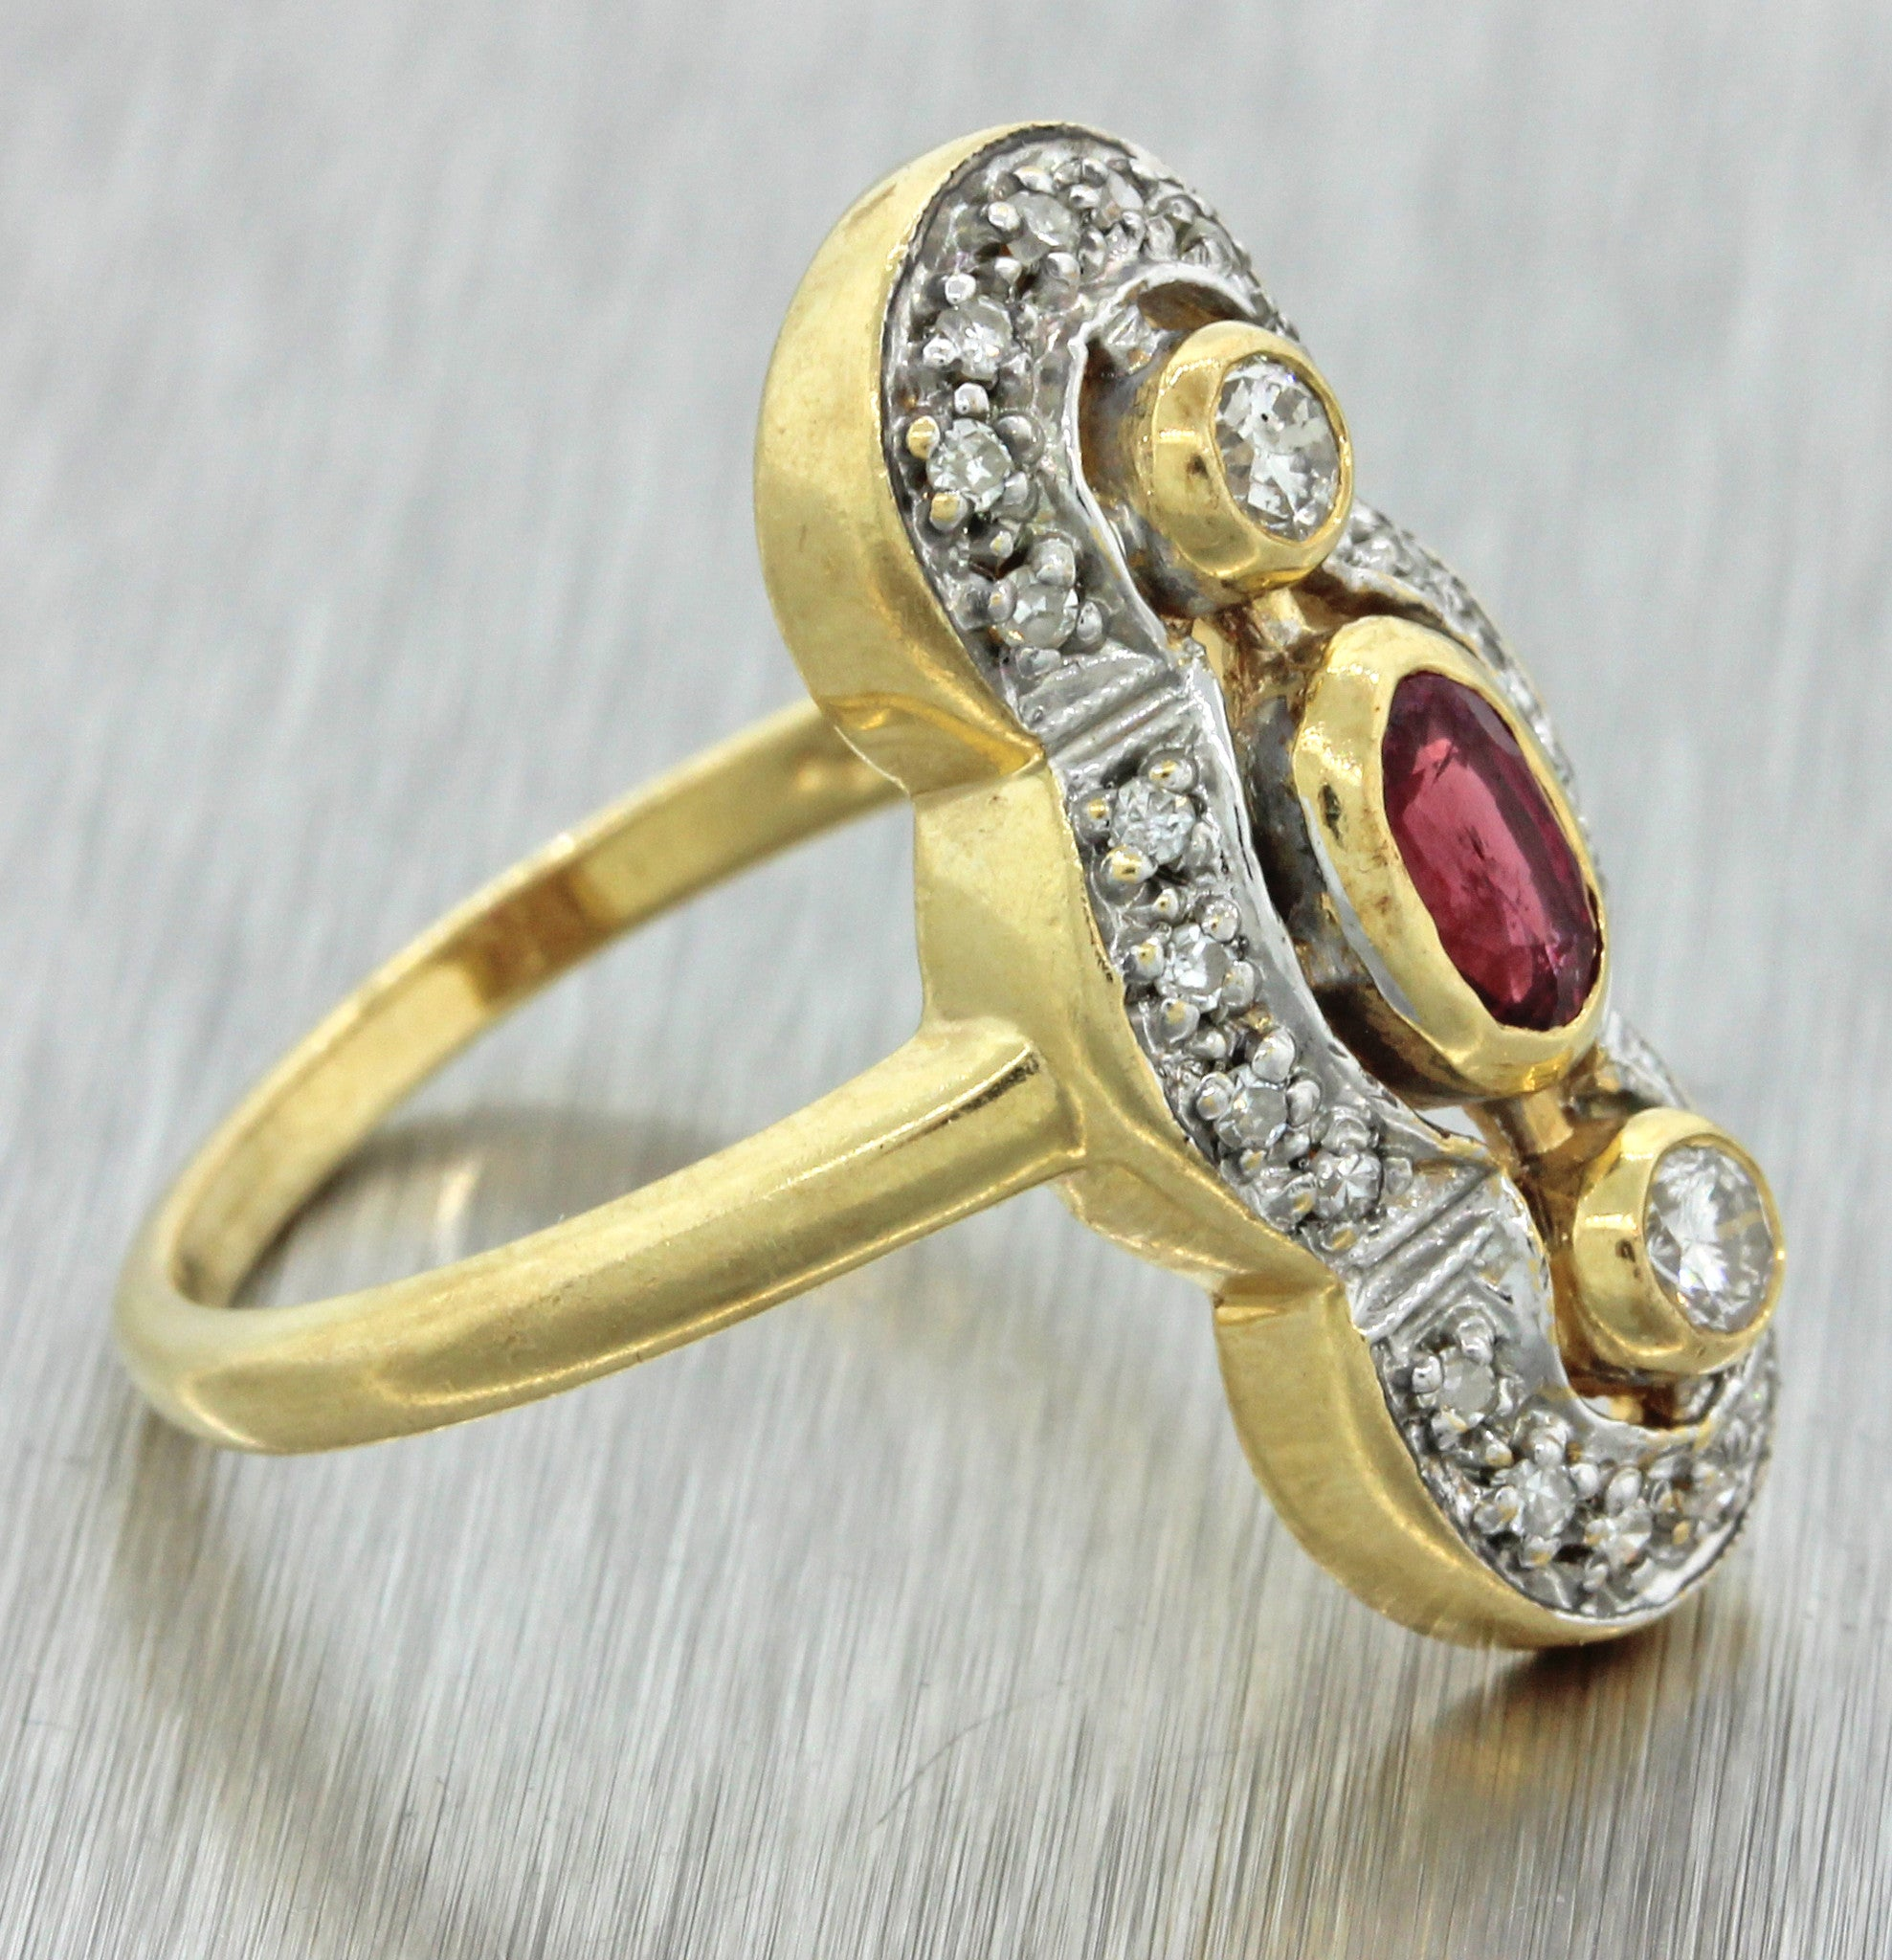 1930s Antique Art Deco 14k Solid Yellow Gold .50ctw Ruby Diamond Ring